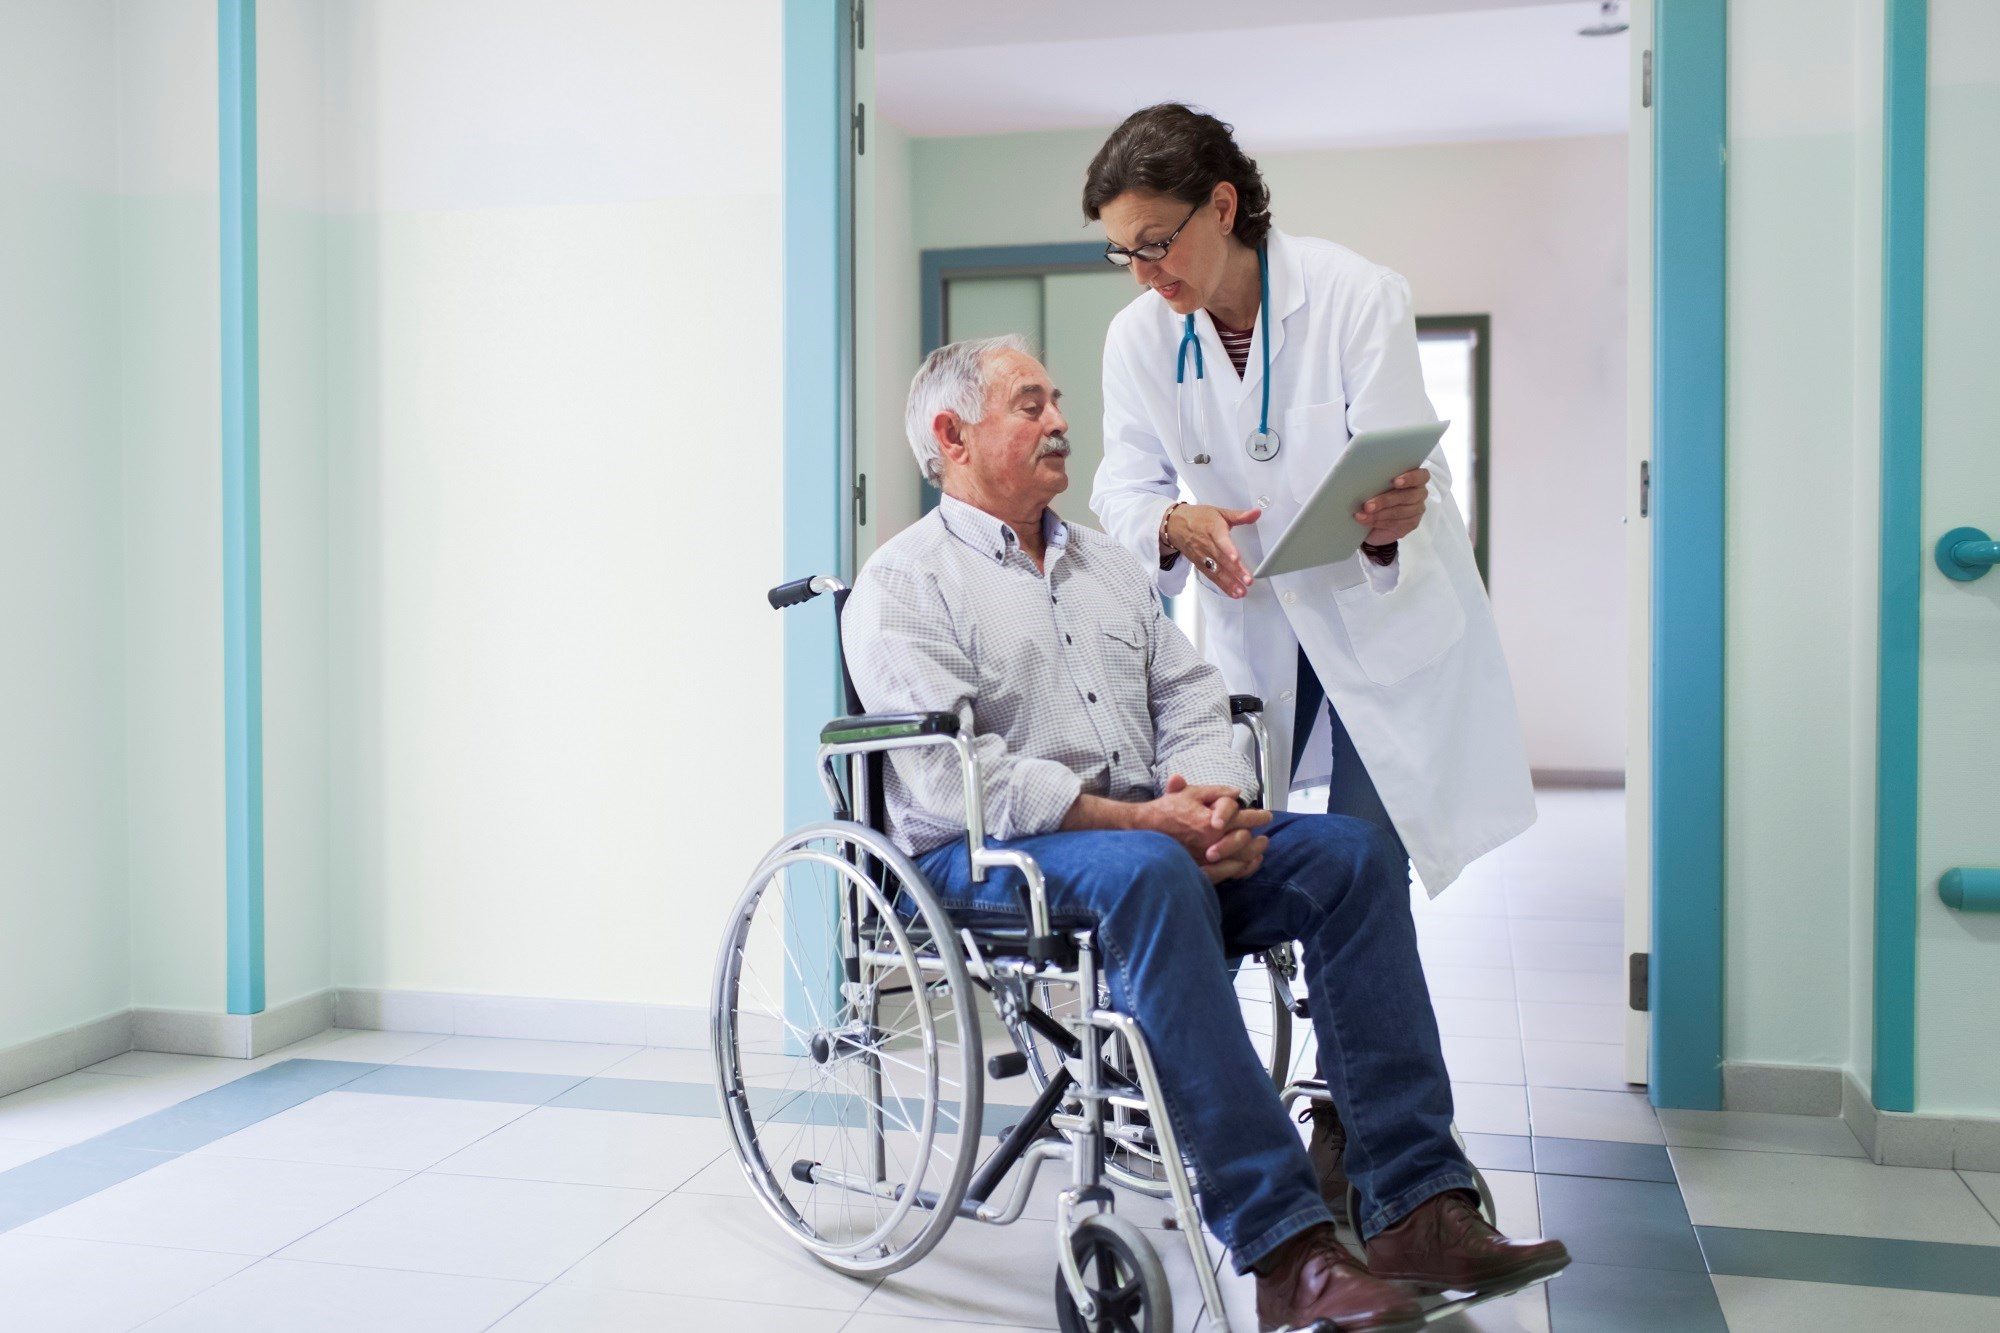 Hospital Readmissions Reduced for COPD With Discharge Care Bundle